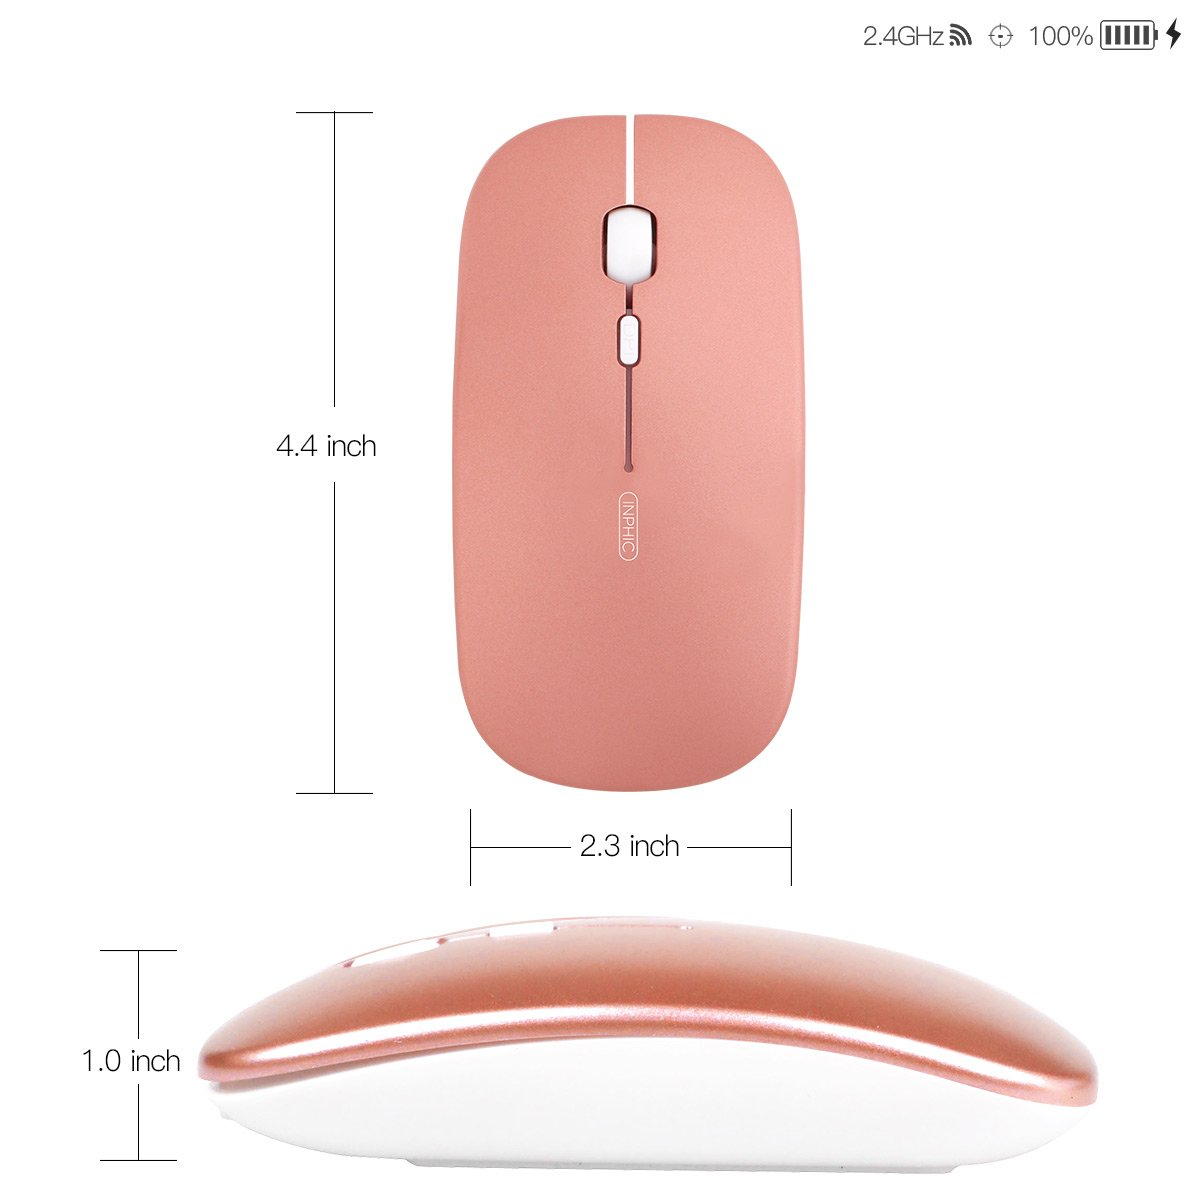 Rechargeable Wireless Mouse,inphic Mute Silent Click Mini Noiseless Optical Mice,Ultra Thin 1600 DPI for Notebook,PC,Laptop,Computer,Macbook (Rose gold)